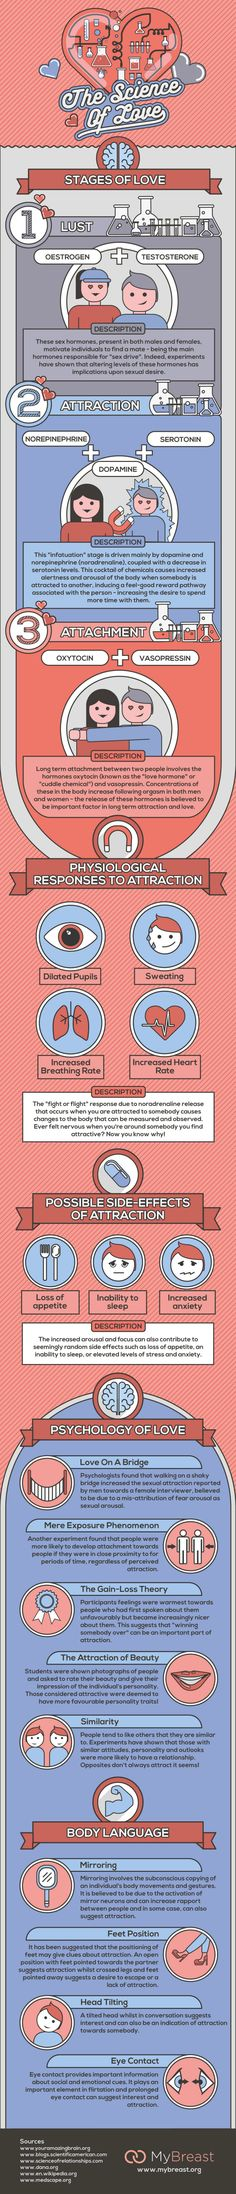 The Science of Love Infographic - http://elearninginfographics.com/the-science-of-love-infographic/